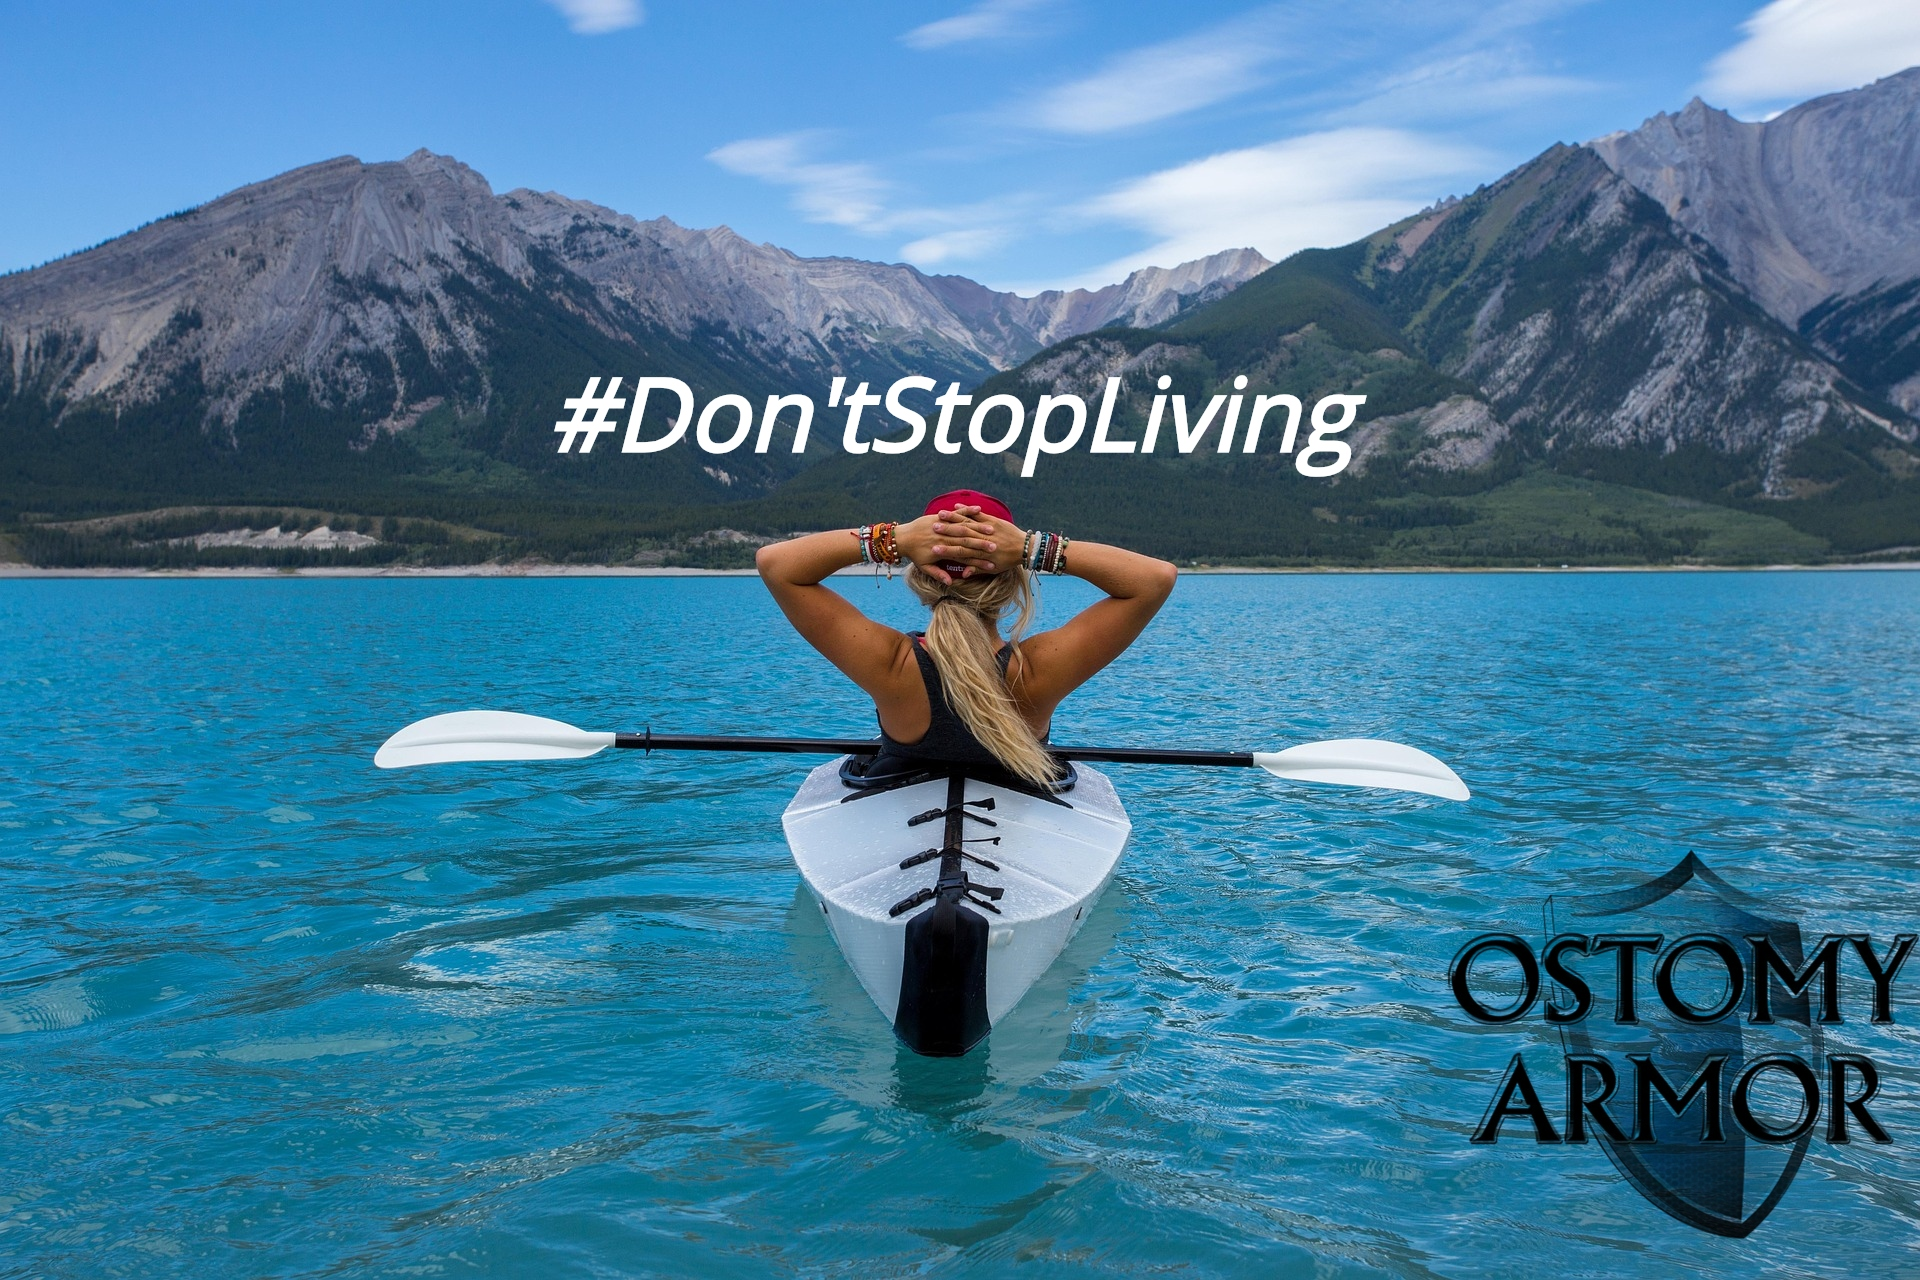 Don'tstopliving - Kayak right